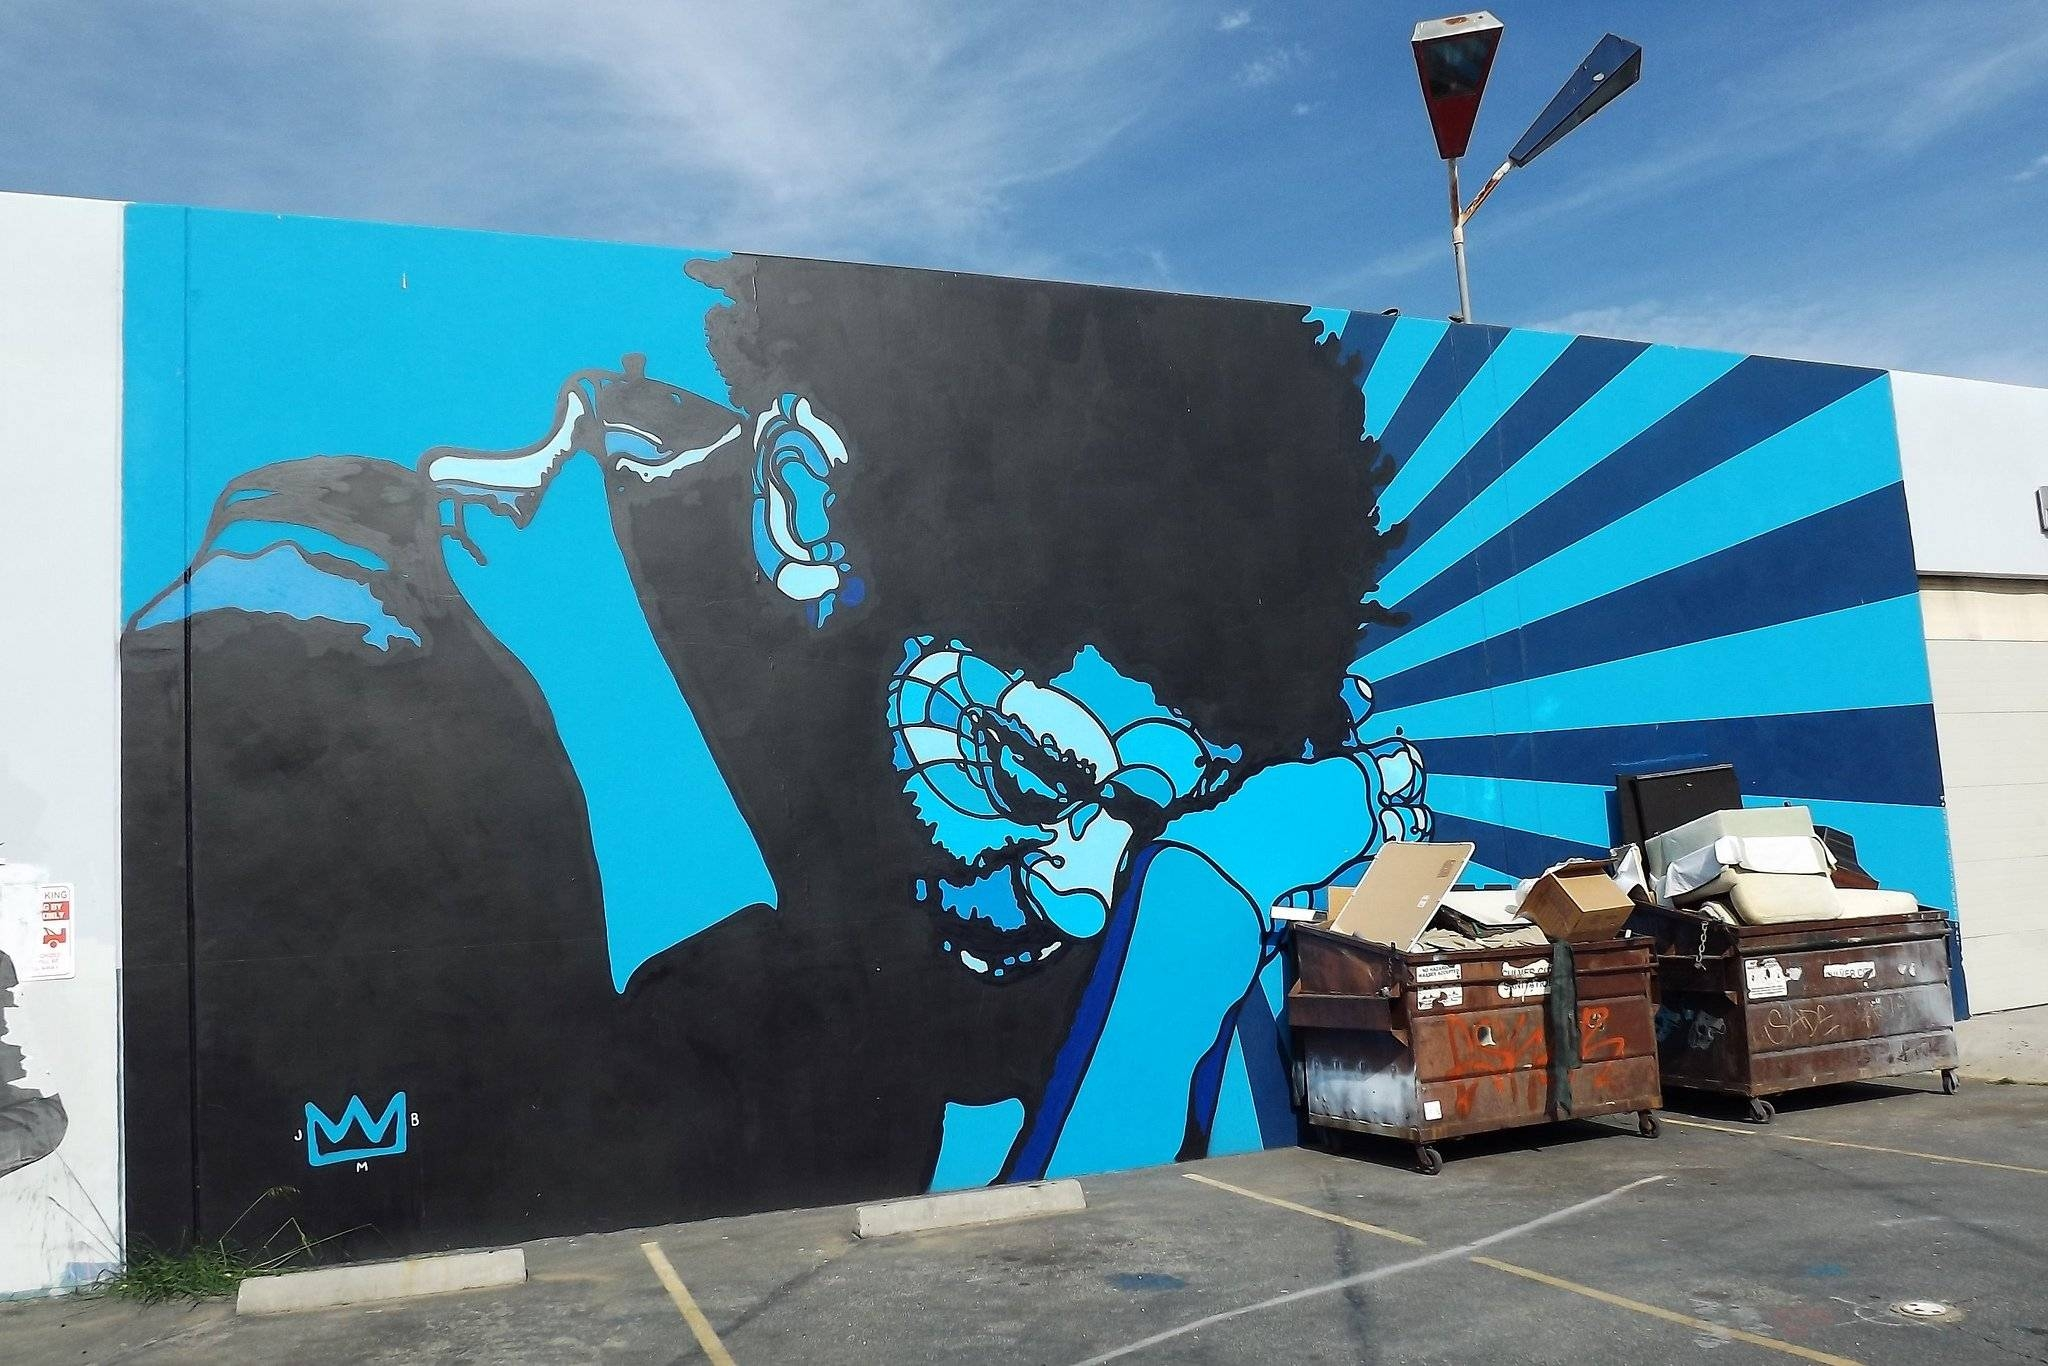 Los Angeles Wall Art | Himalayantrexplorers in Most Up-to-Date Los Angeles Wall Art